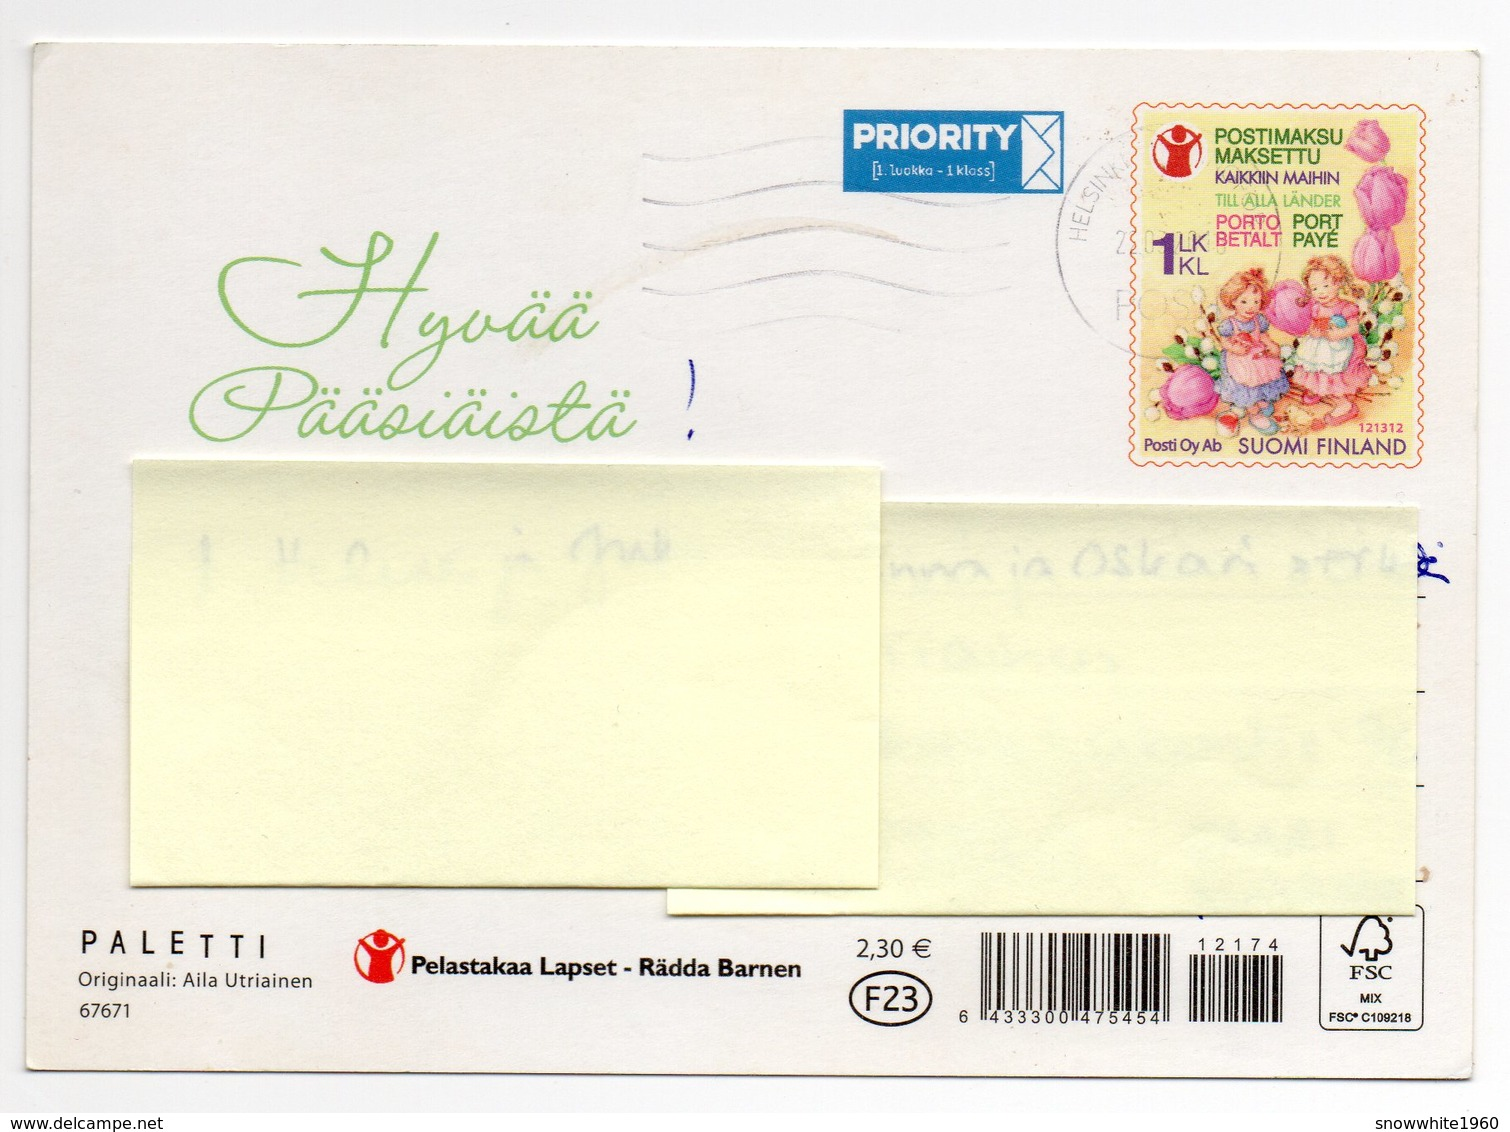 Postal Stationery FINLAND - CHARITY: SAVE THE CHILDREN - EASTER - ARTIST: AILA UTRIAINEN - GIRLS - EGGS - Postage Paid - Finlandia